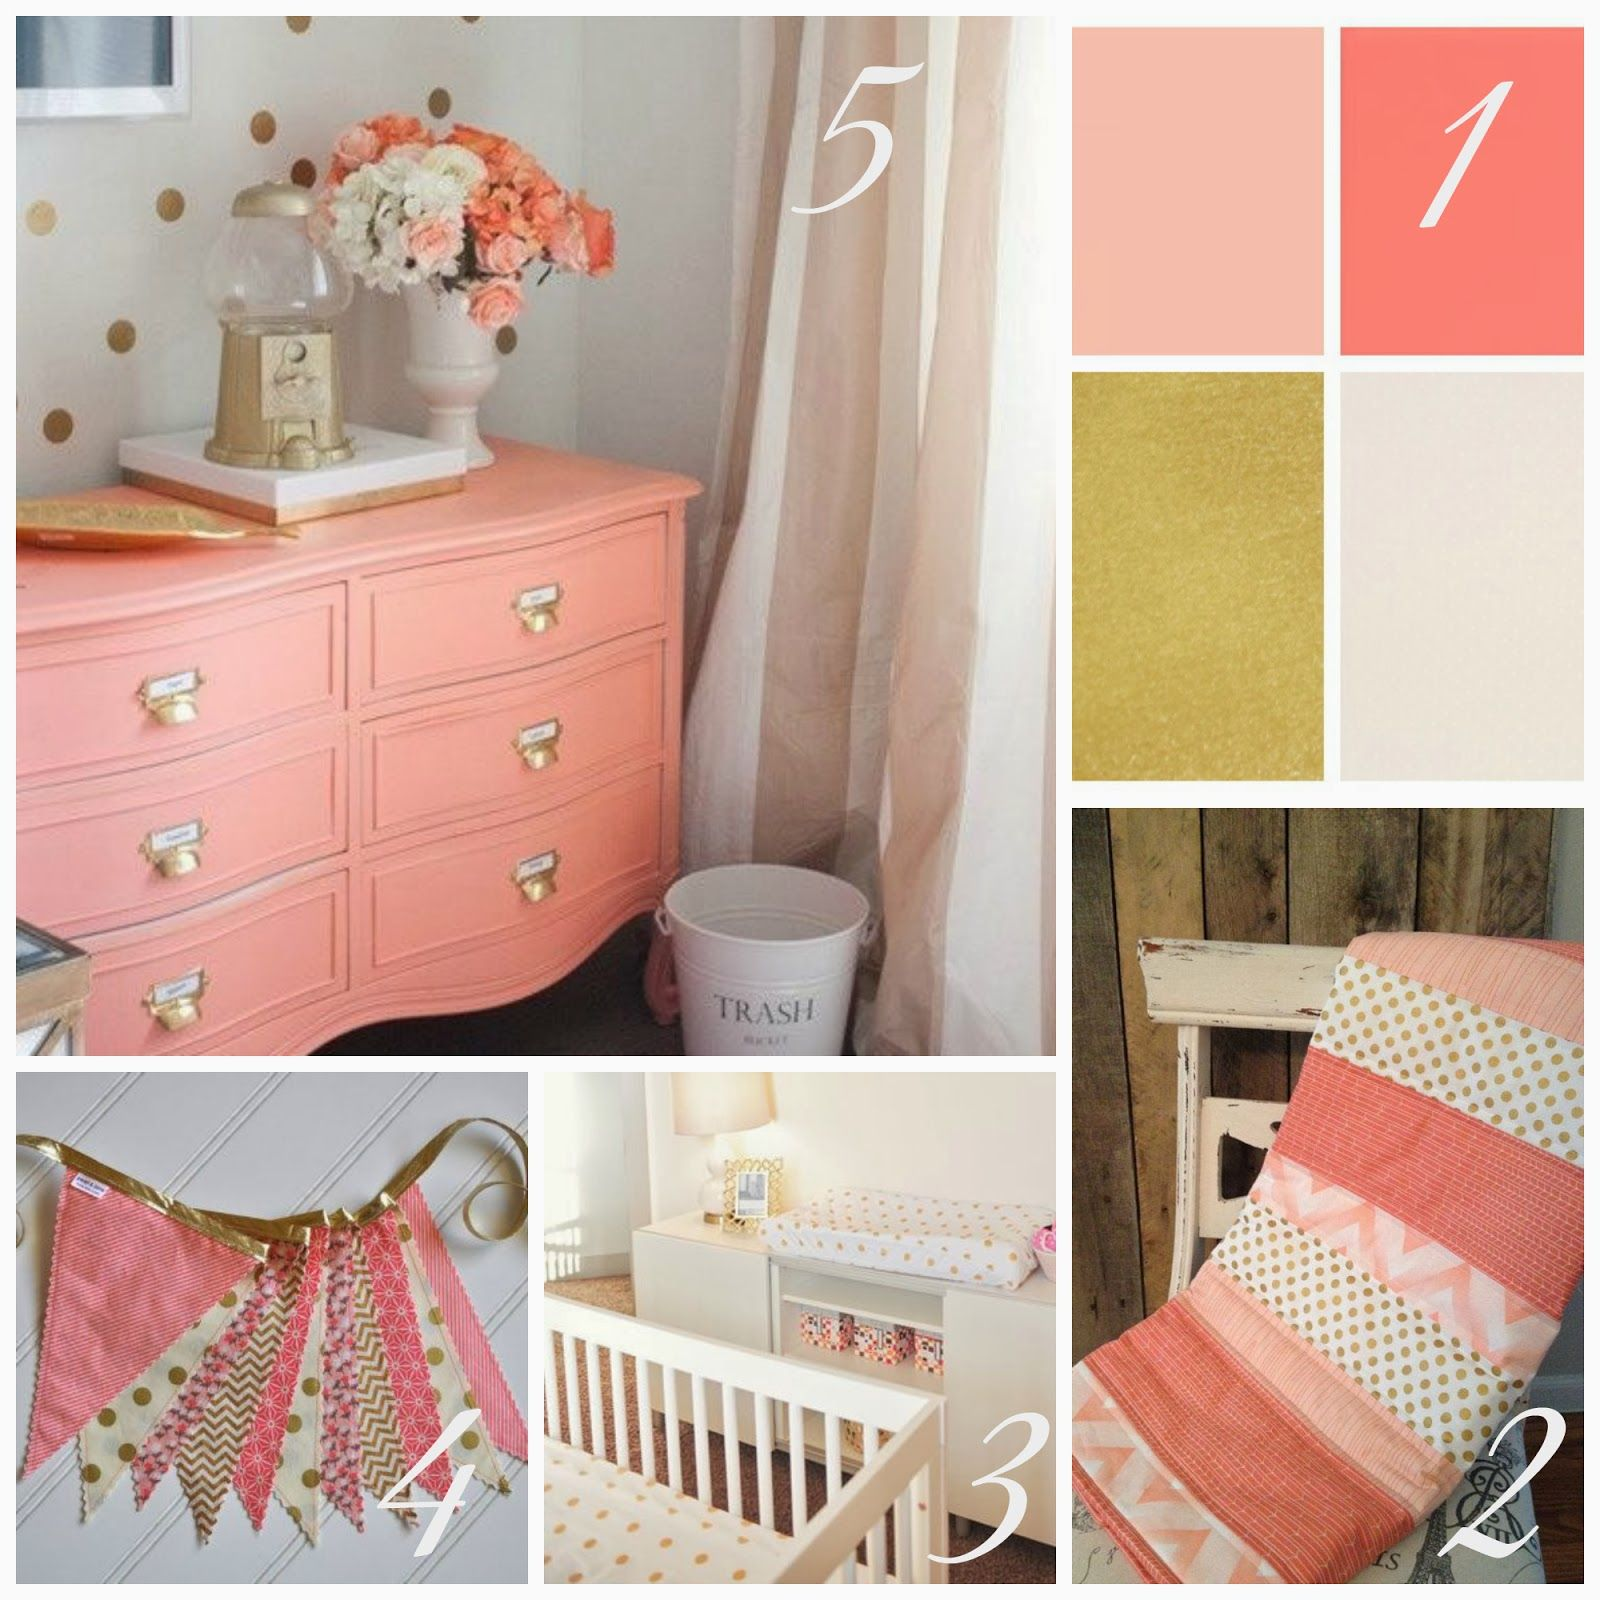 Marion S Coral And Gold Polka Dot Nursery: Coral And Gold Nursery - Google Search